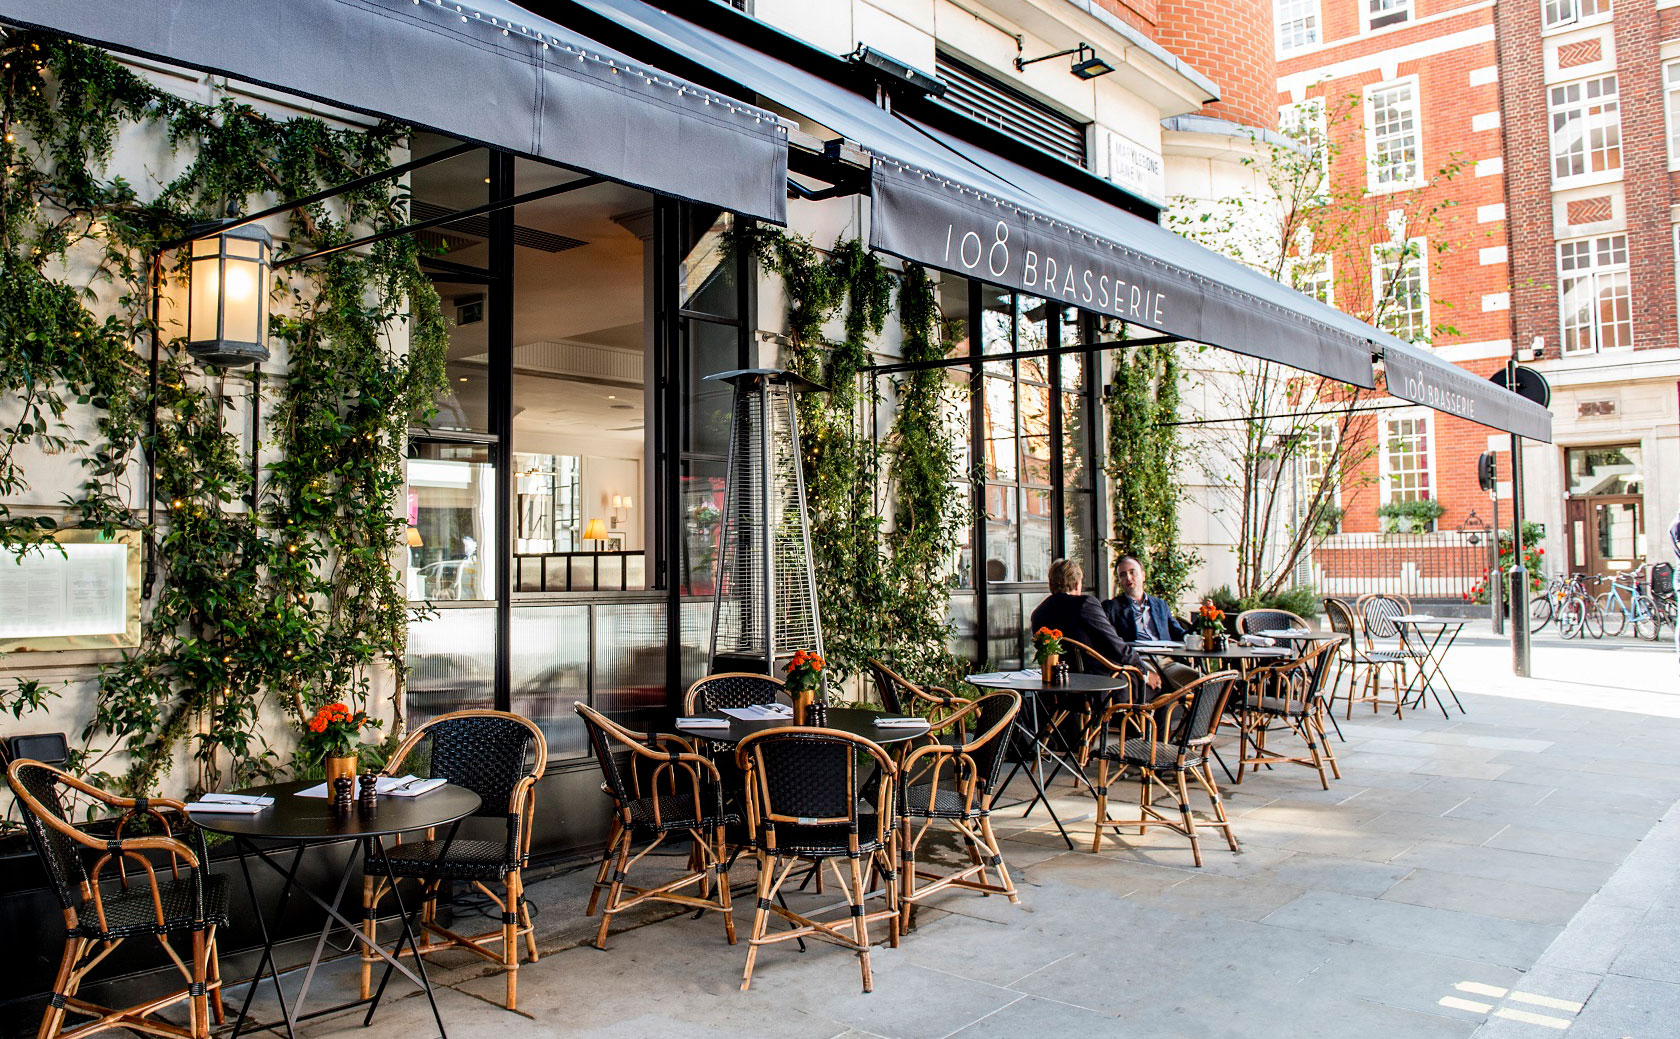 'Breakfast On The Lane' is Coming to Marylebone's 108 Brasserie 3